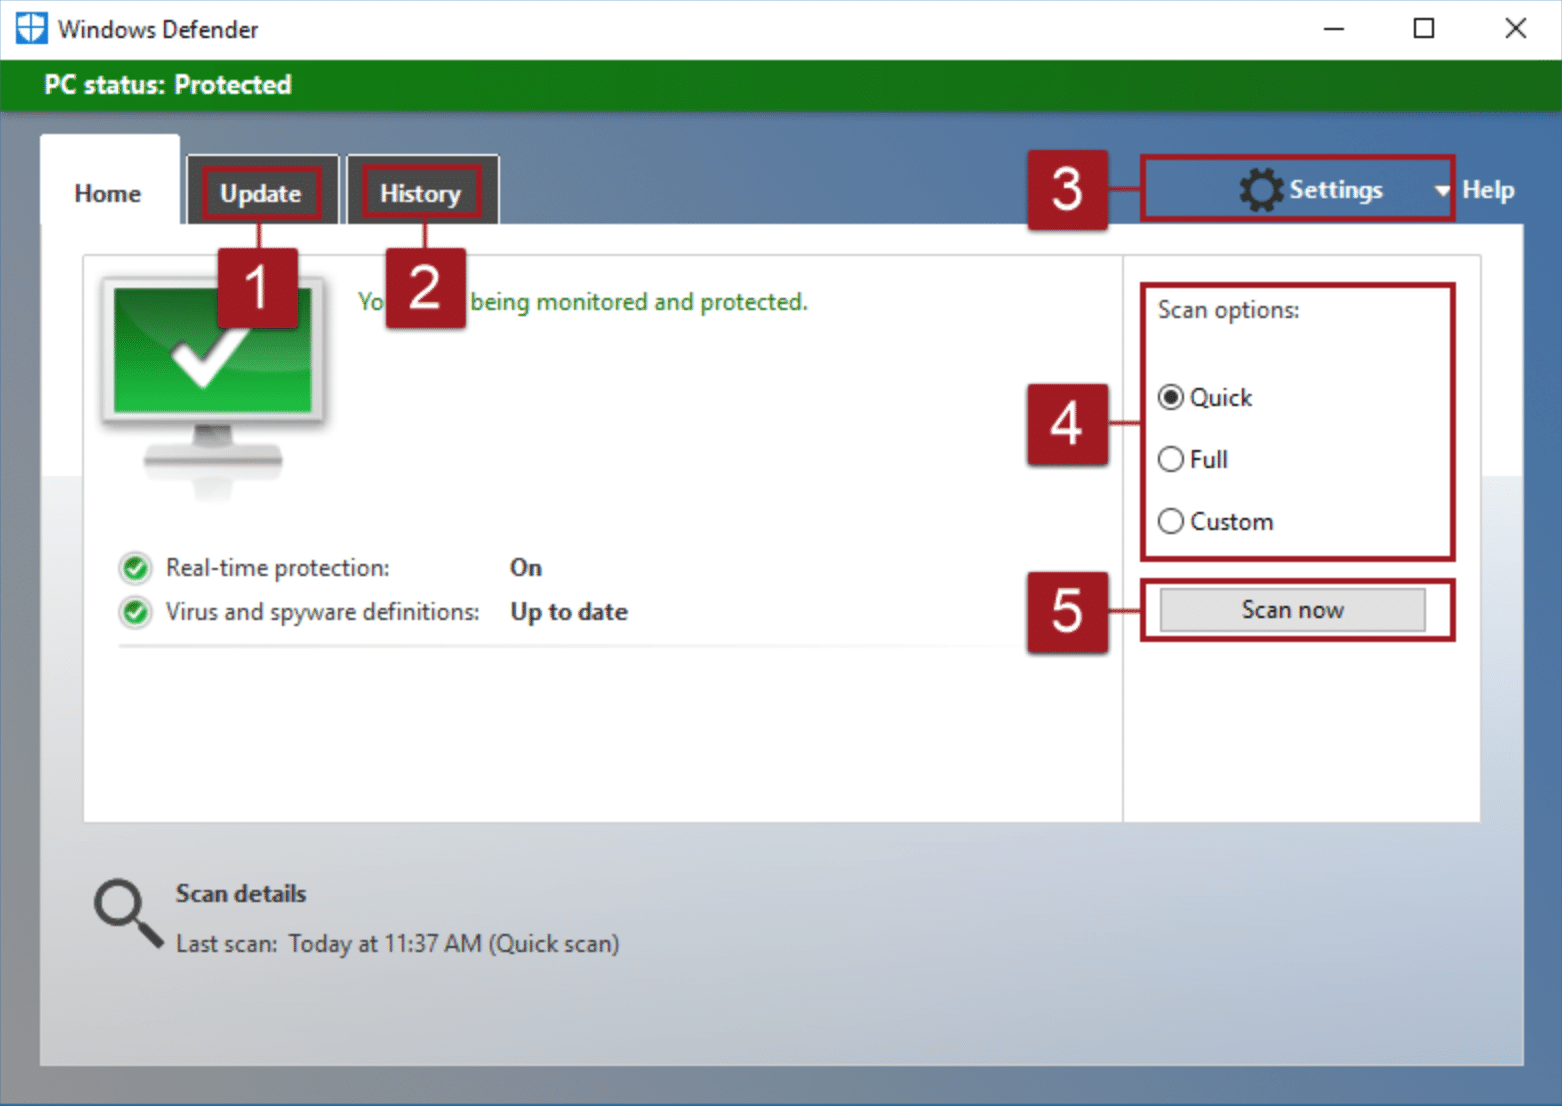 windows defender user interface screen